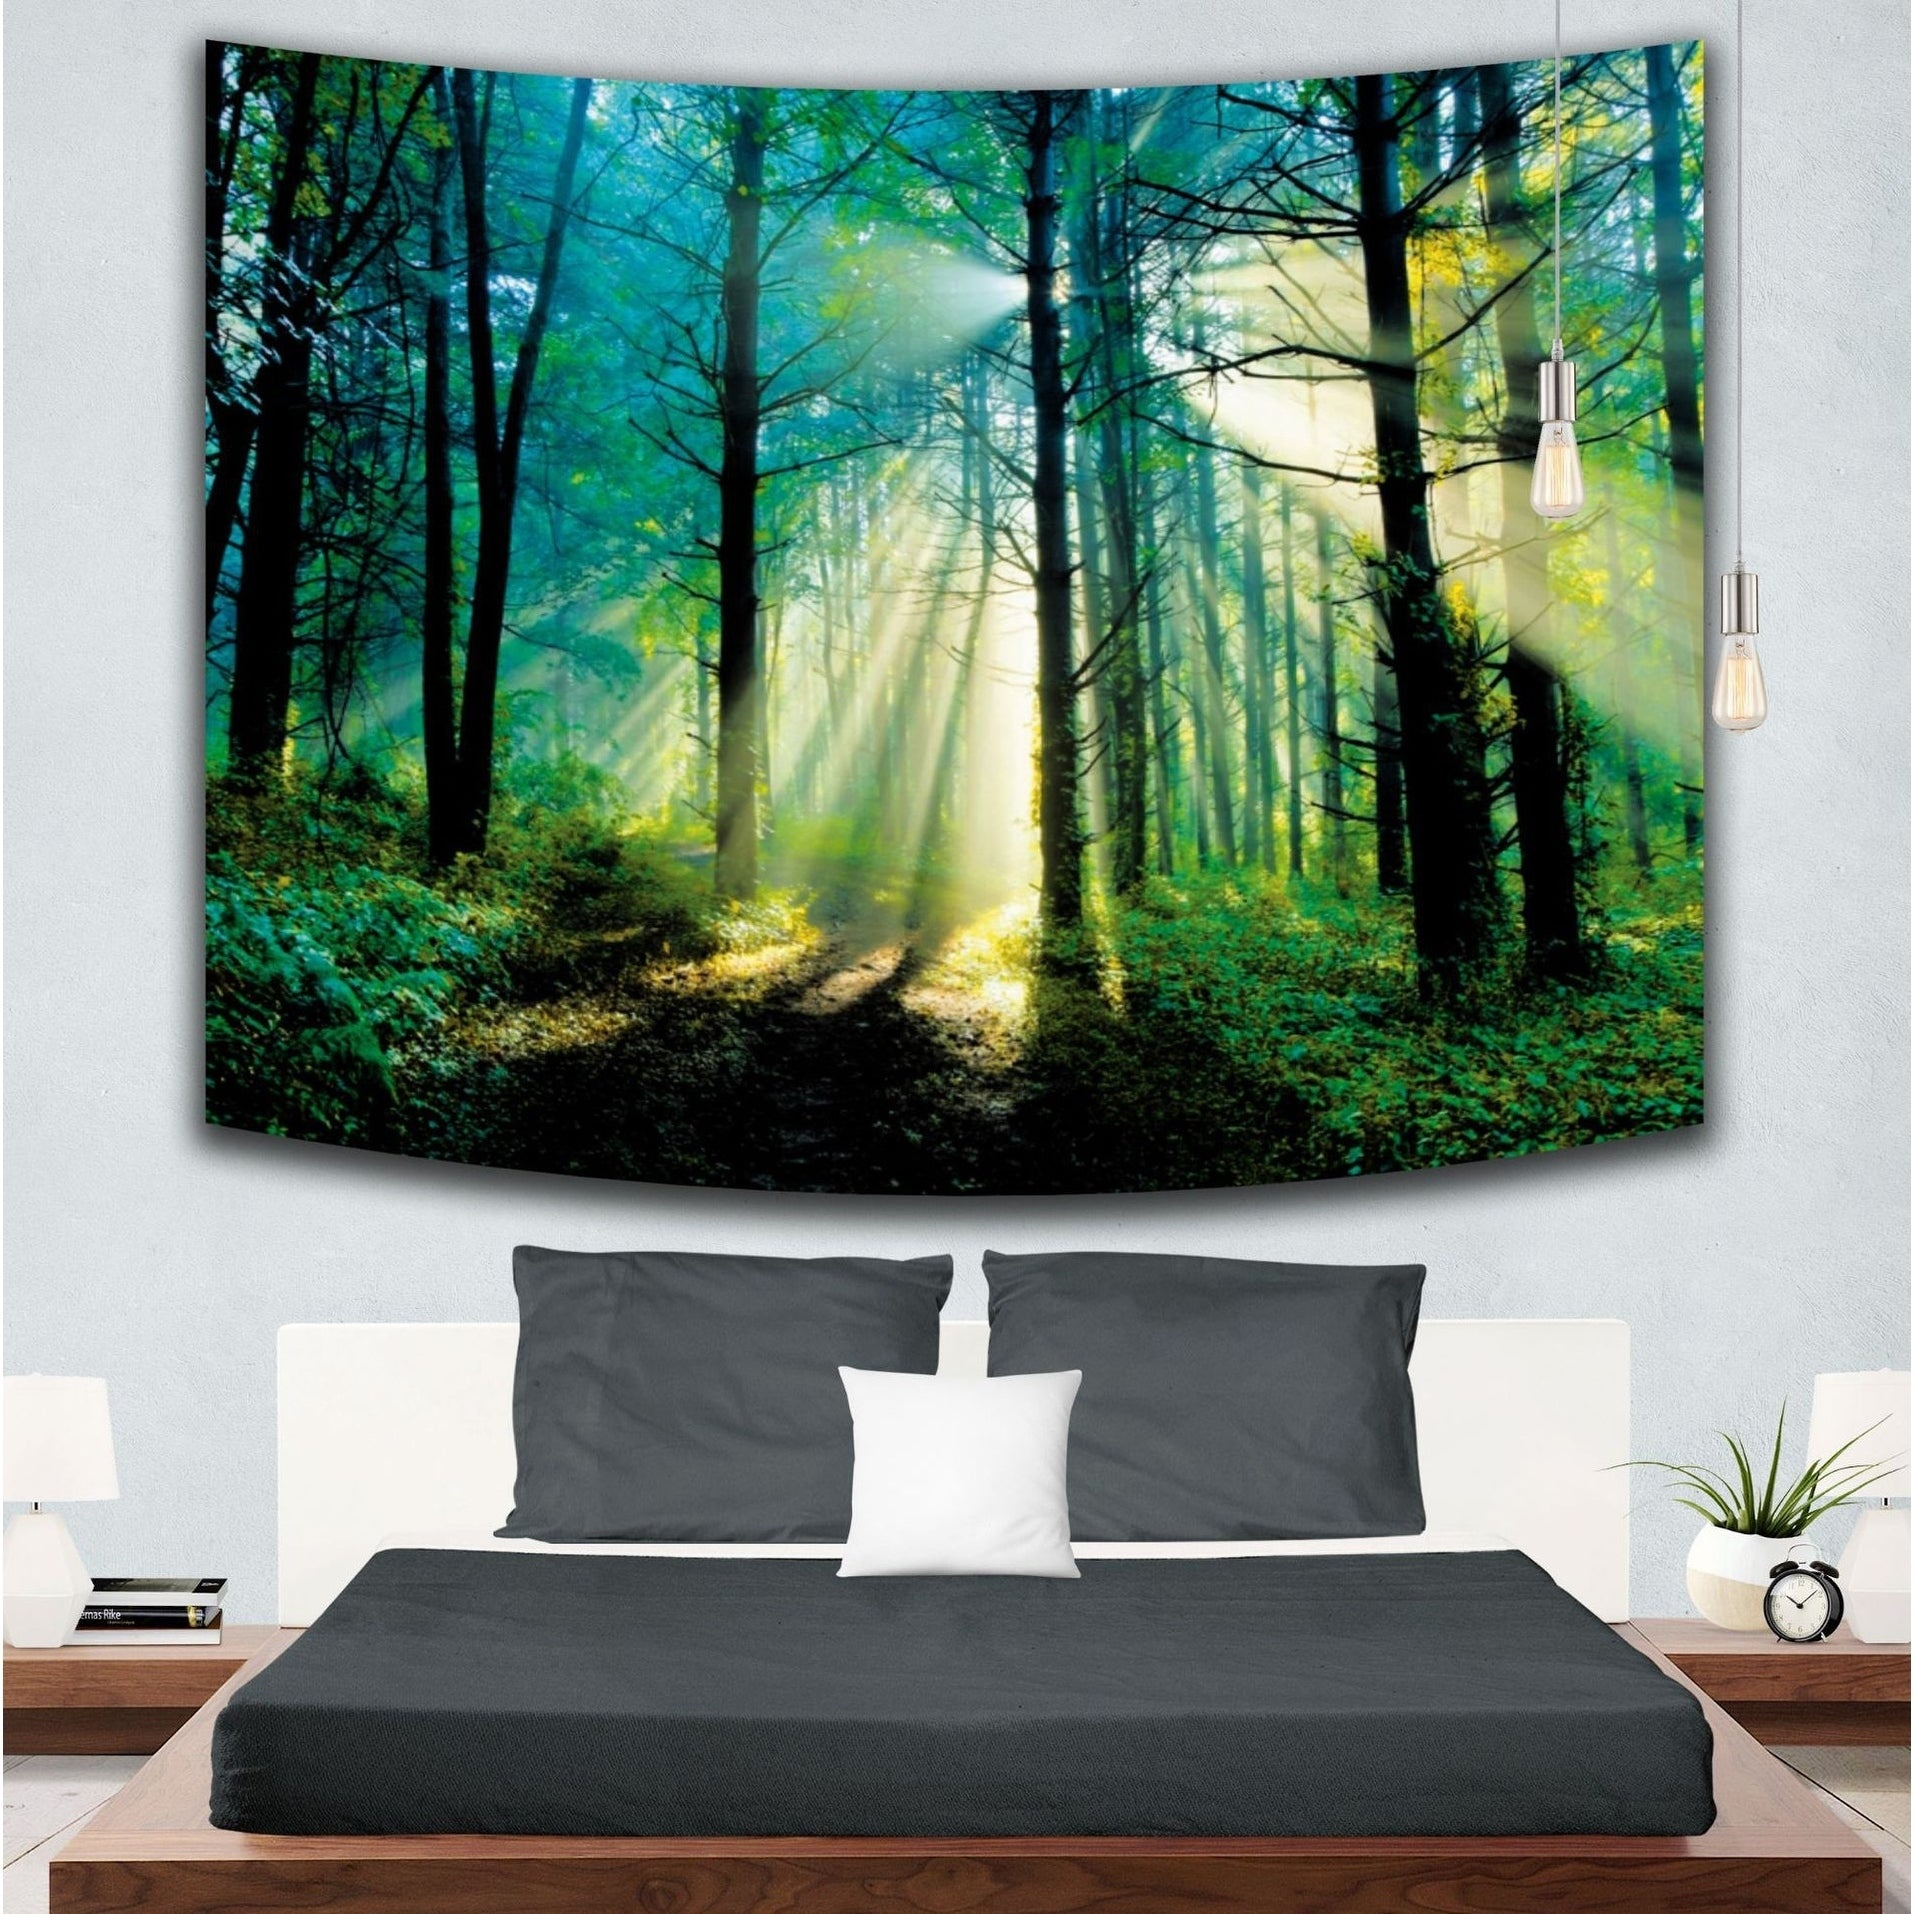 Forest Tree Tapestry Wall Hanging Nature Scene Landscape Wall Blanket Home Decor For Dorm Living Room Bedroom 59 79 Inch On Sale Overstock 29017341